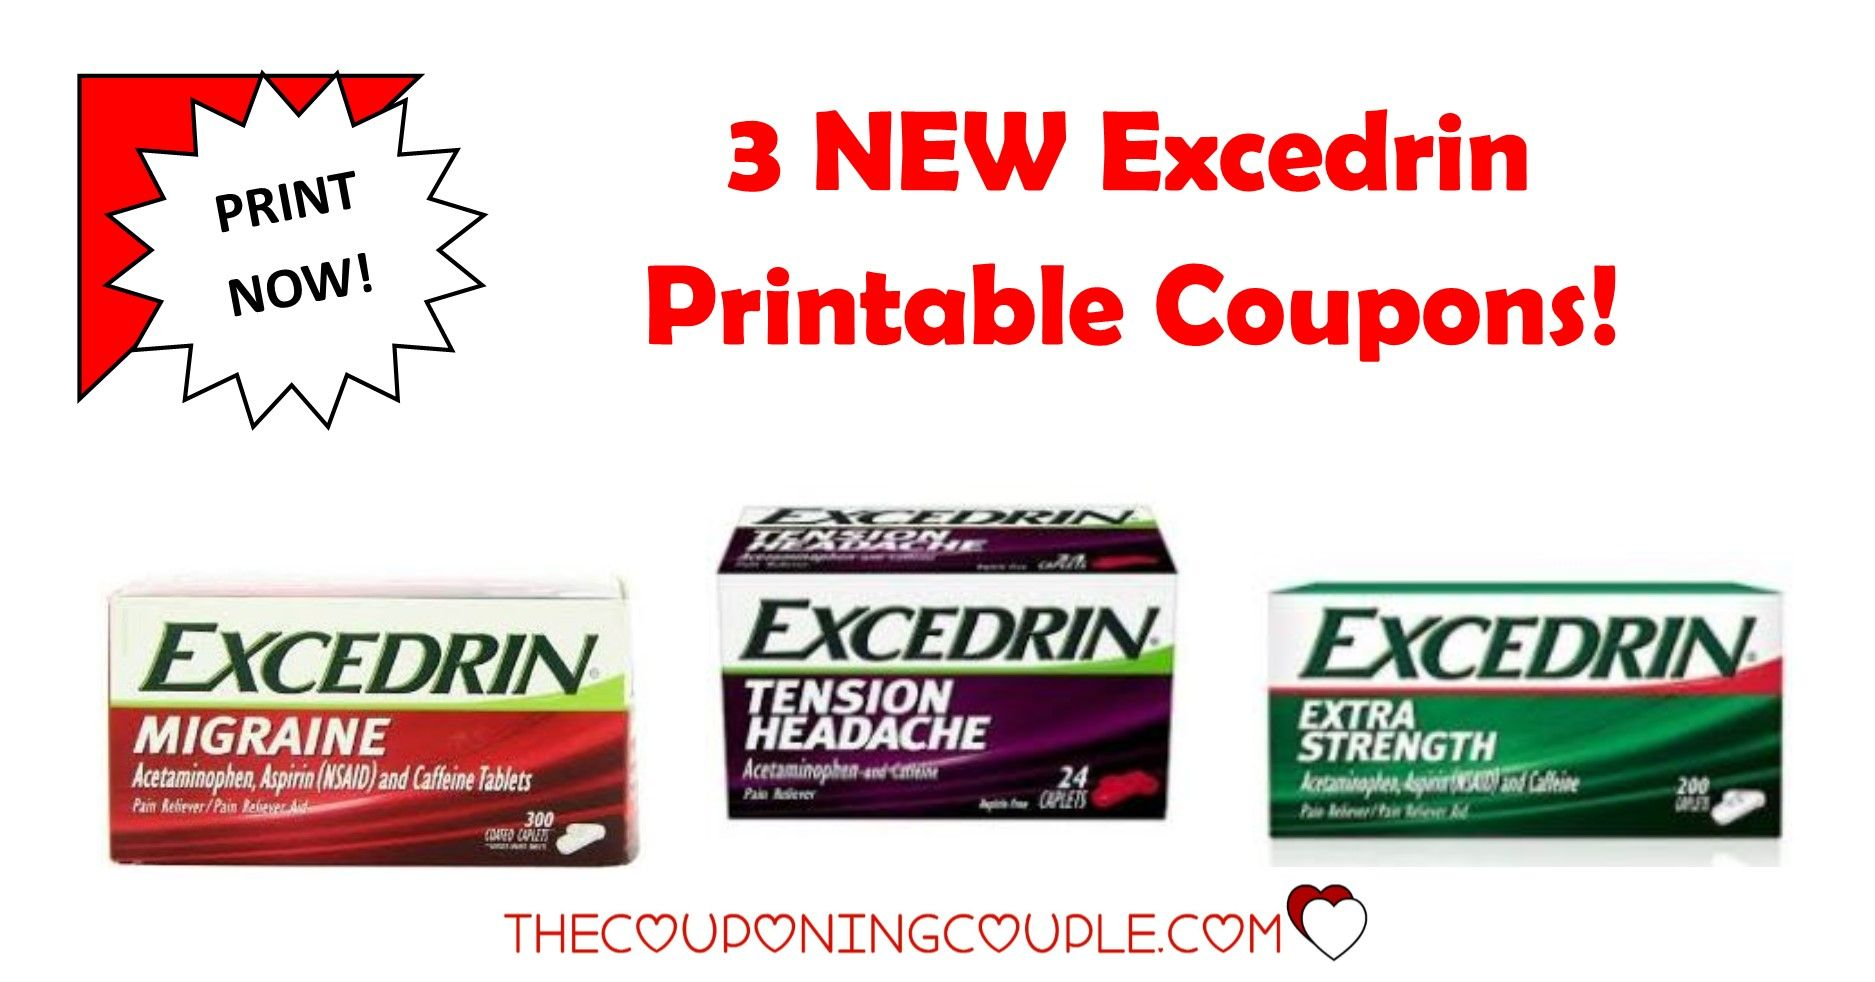 Get the 3 NEW Excedrin Printable Coupons that were just released this morning! Be sure to print your $4.50 in Savings!  Click the link below to get all of the details ► http://www.thecouponingcouple.com/excedrin-printable-coupons/ #Coupons #Couponing #CouponCommunity  Visit us at http://www.thecouponingcouple.com for more great posts!